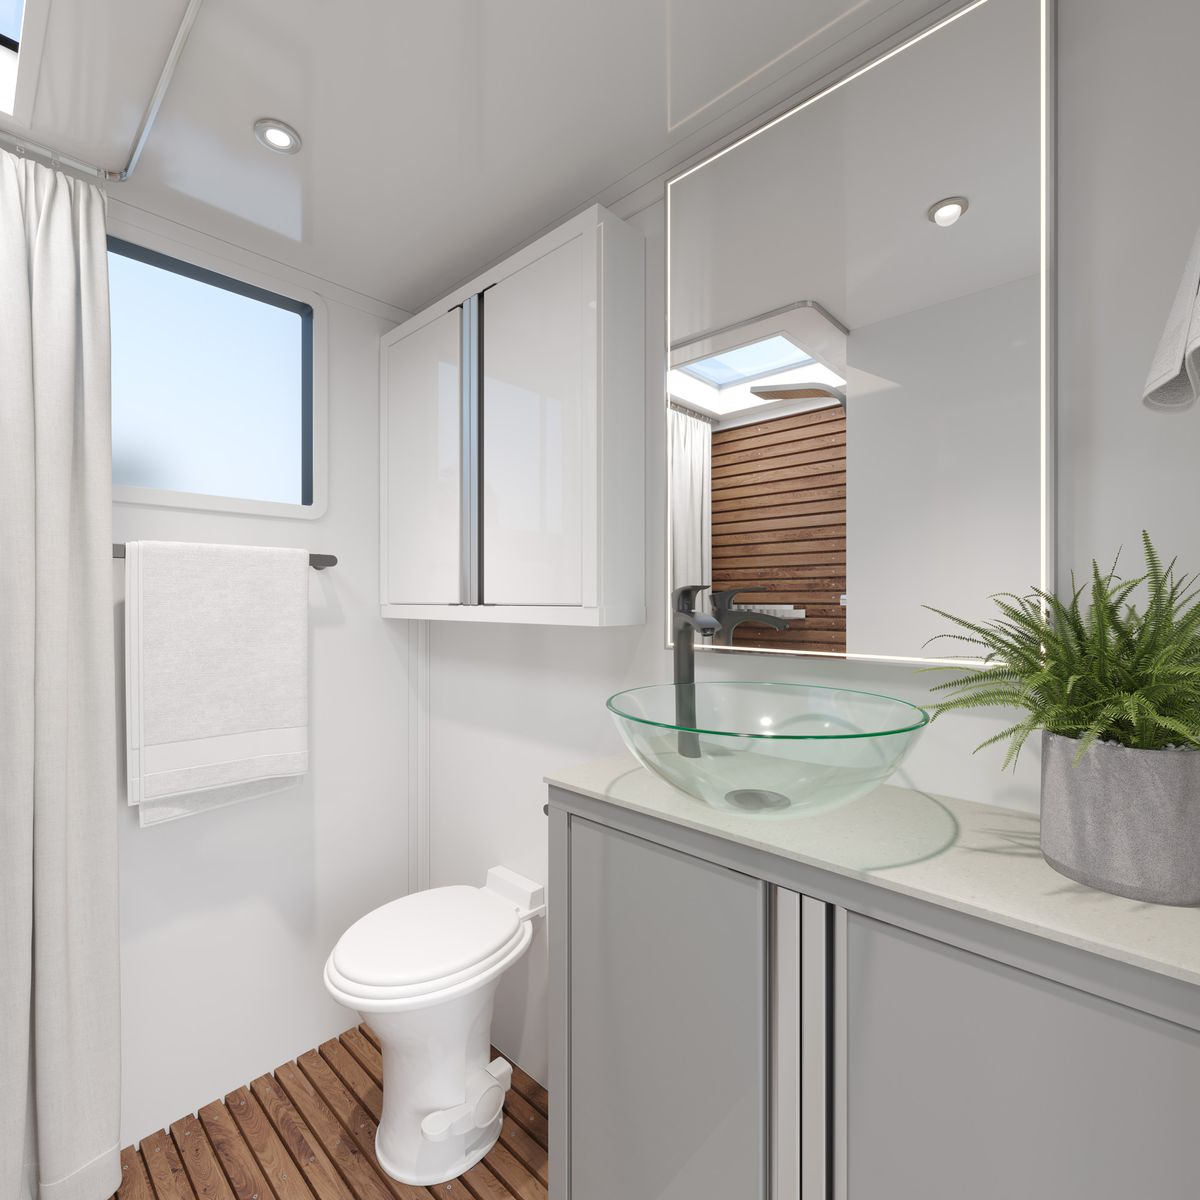 A bathroom with a white toilet, gray cabinets, a glass bowl sink, mirrors, and walnut flooring.